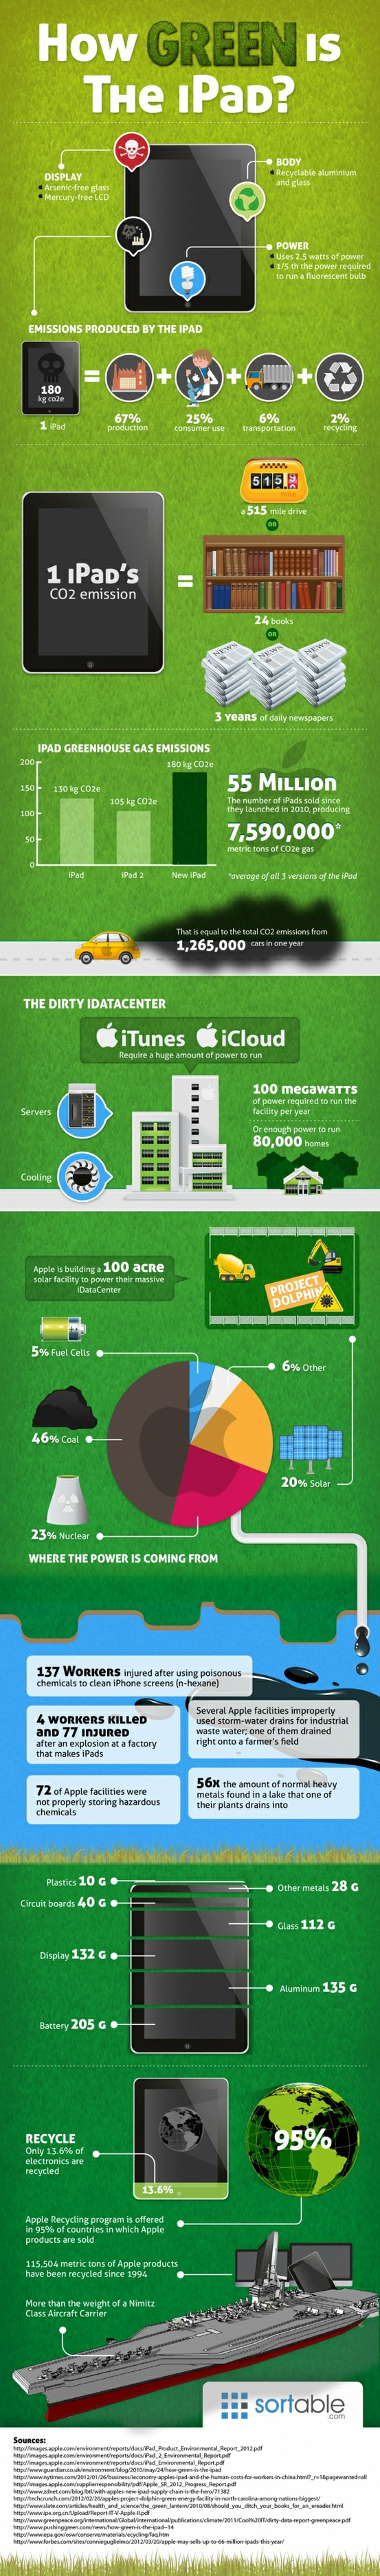 How Green is the iPad? Infographic Infographic, Ipad